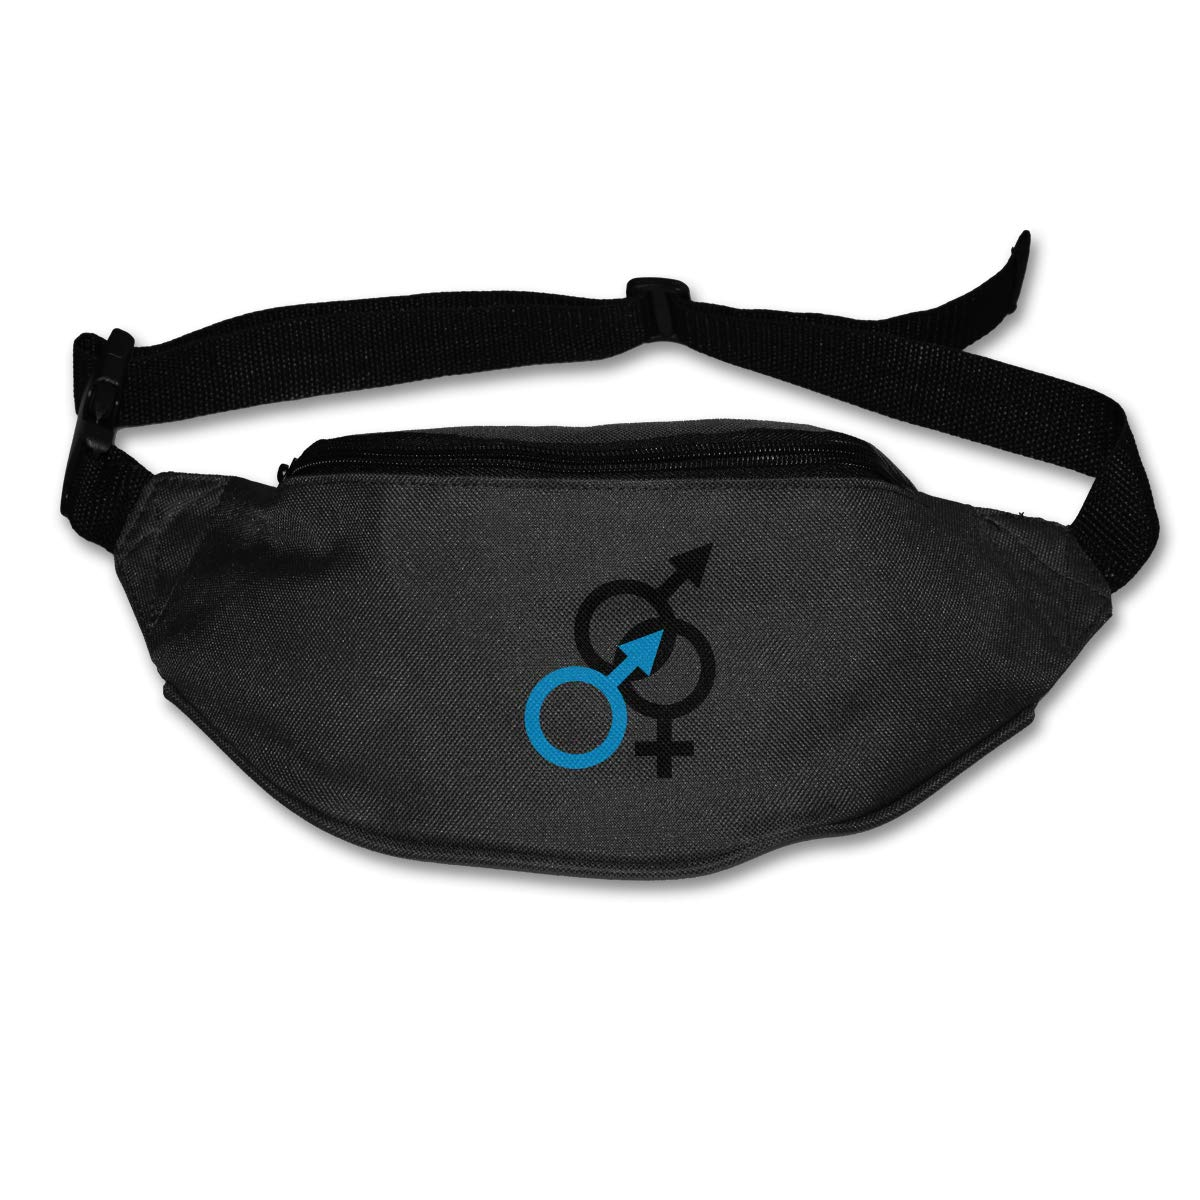 IM A MAN And BI SEXUAL Sport Waist Pack Fanny Pack Adjustable For Run